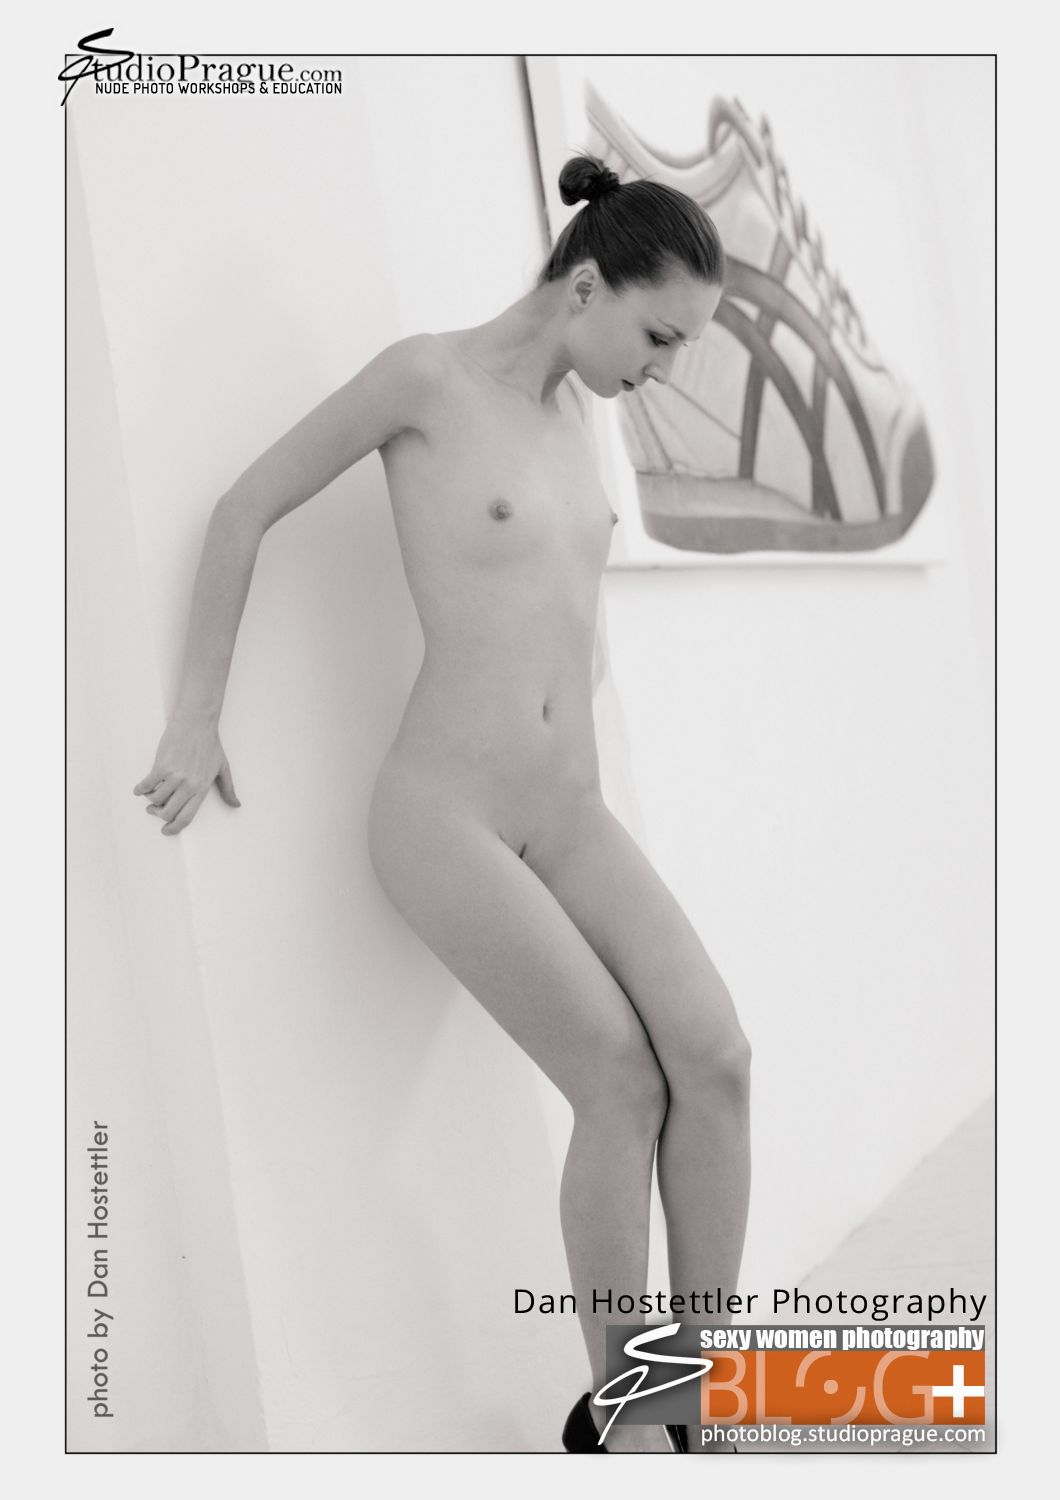 Chloe Nude Photo Shoot in Gallery, Prague - by Dan Hostettler